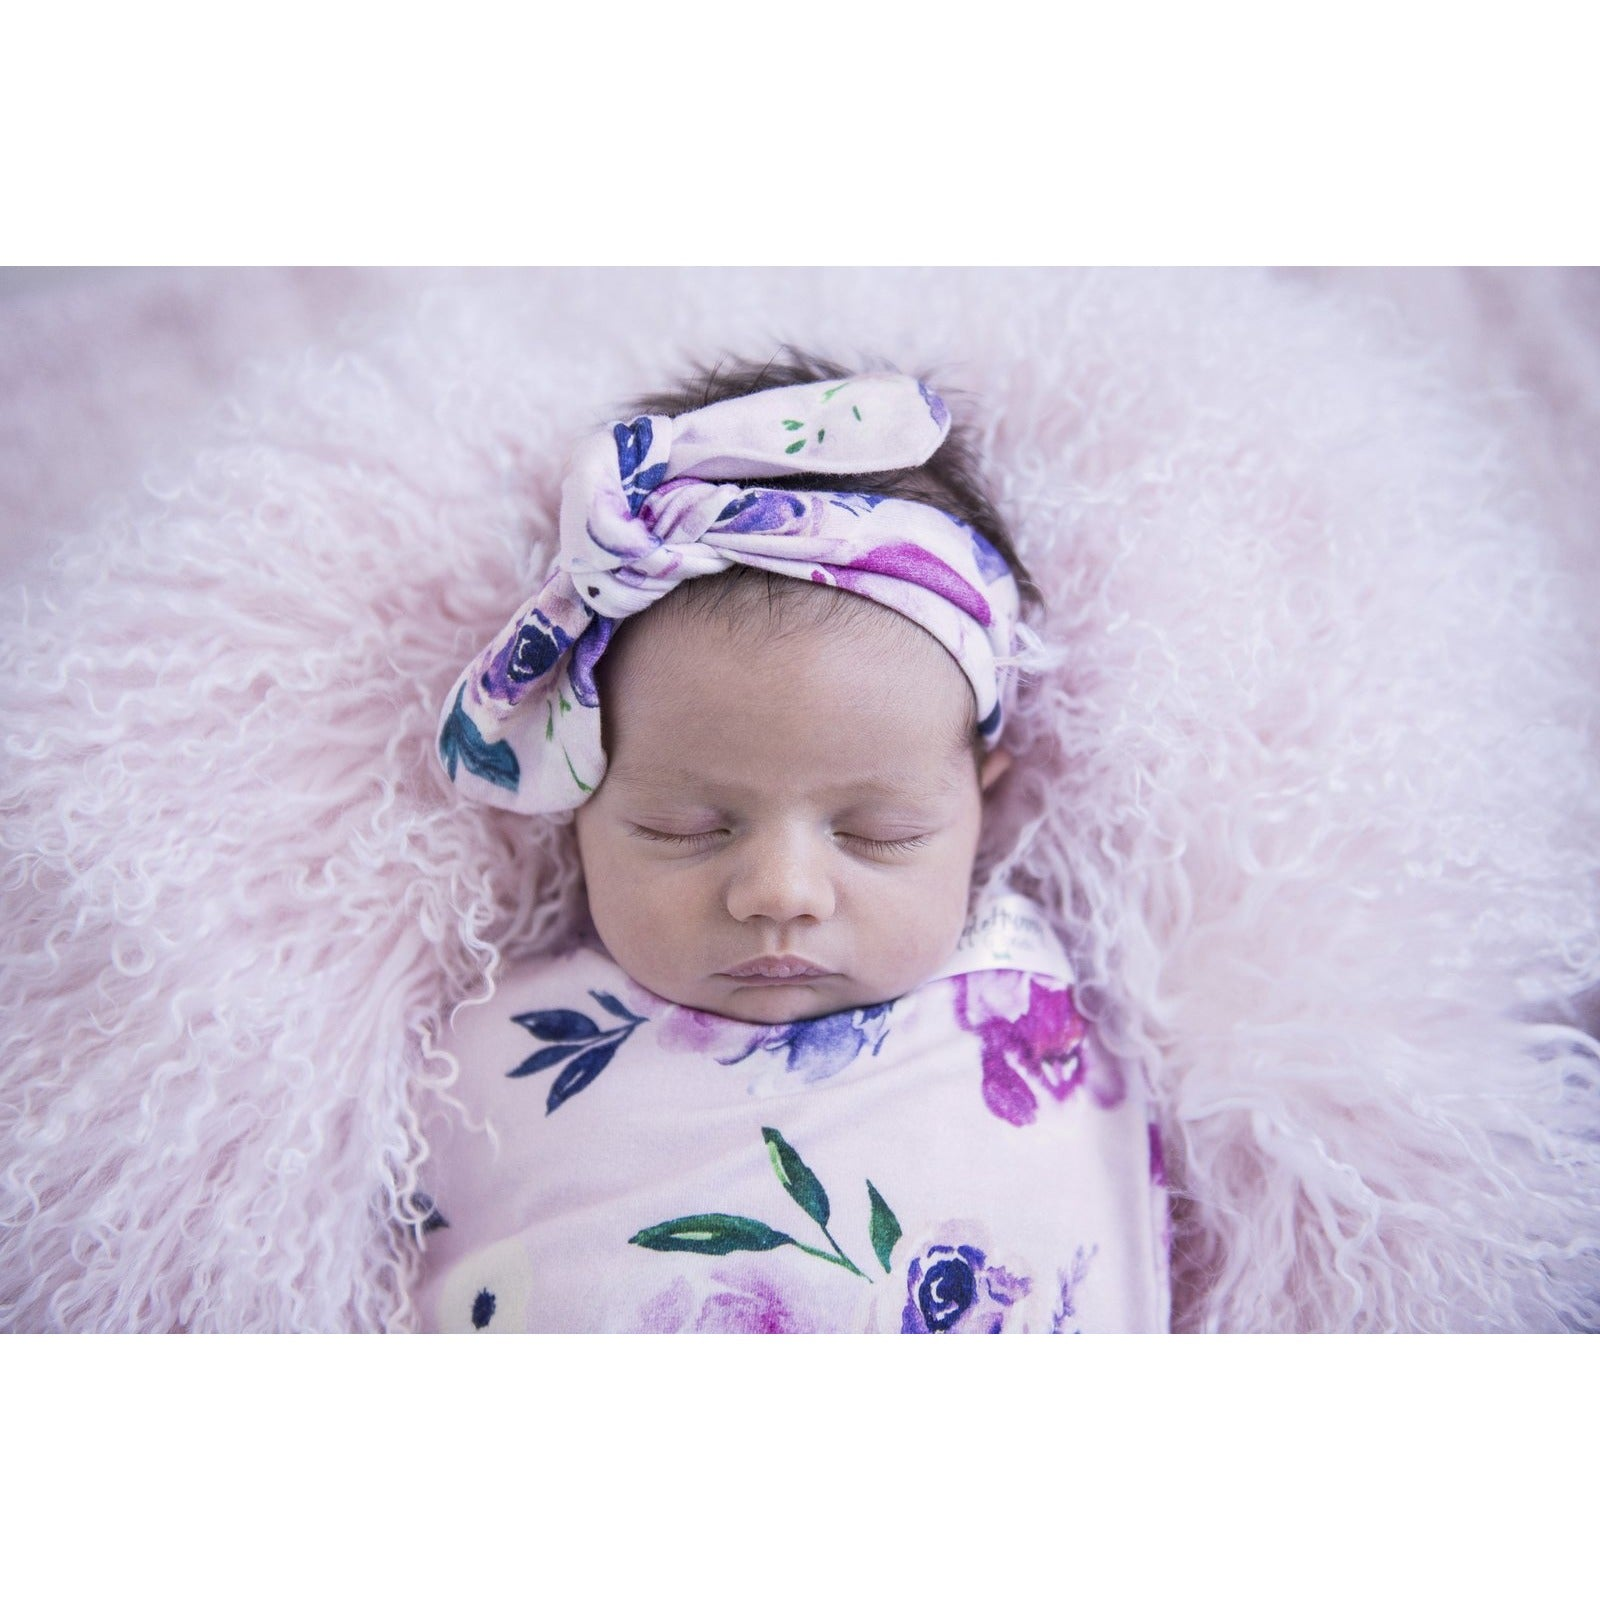 Floral Kiss I Snuggle Swaddle & Topknot Set